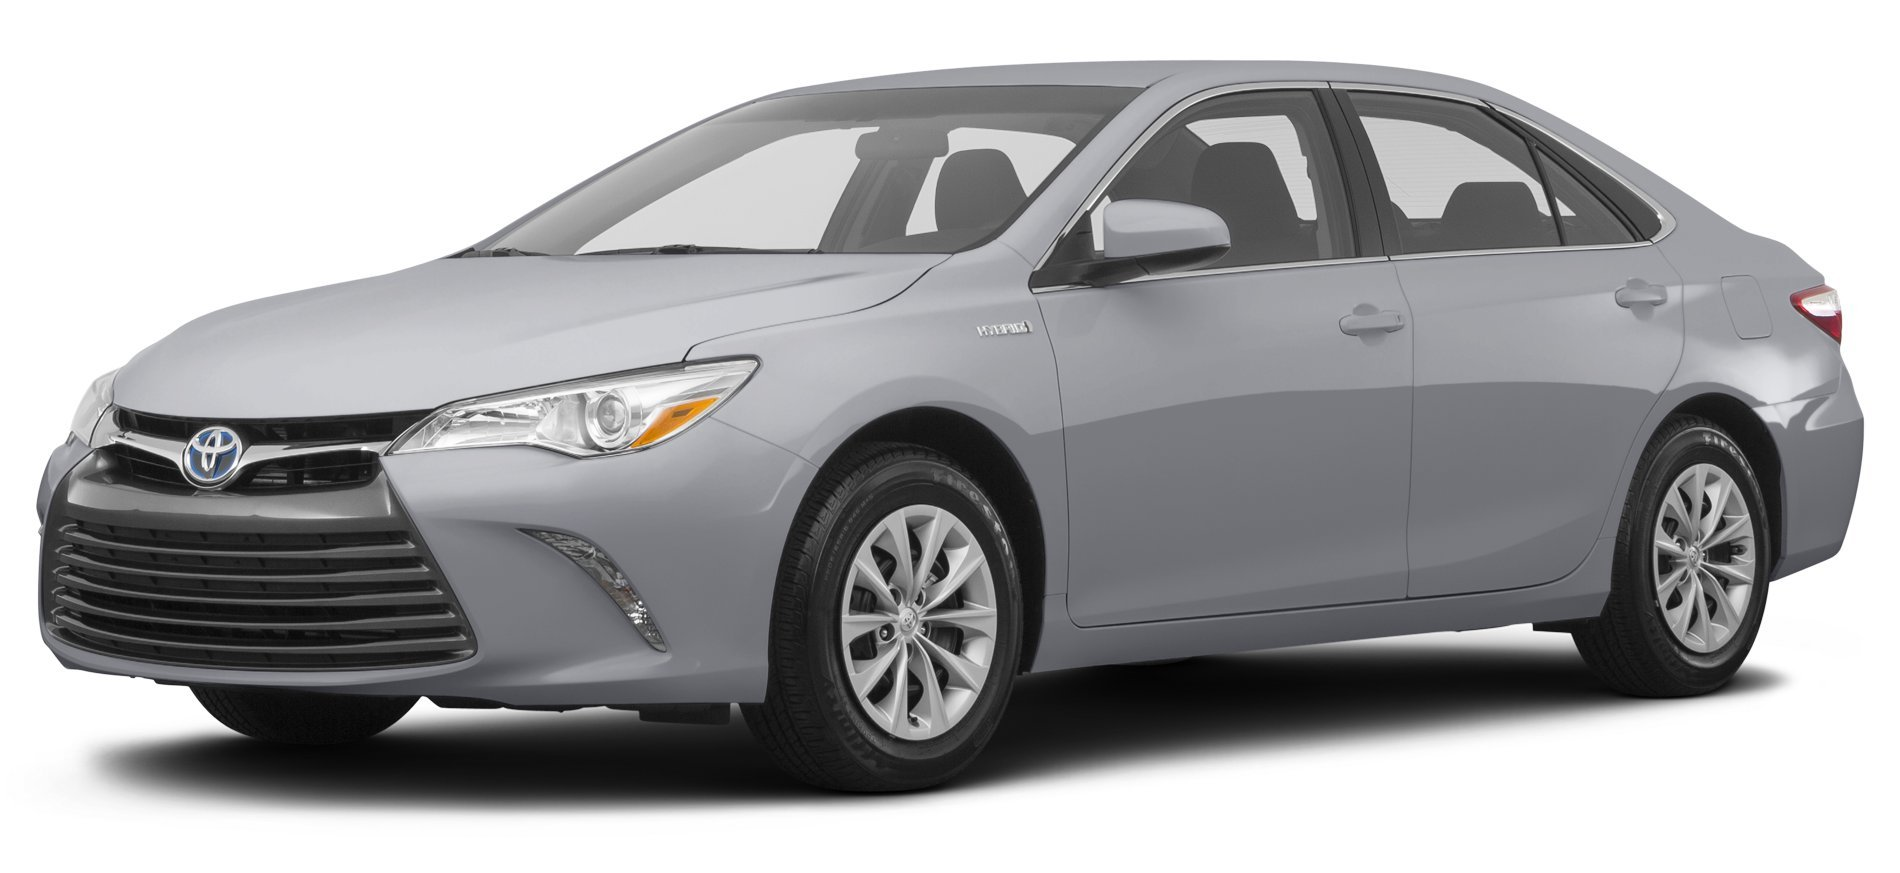 2017 toyota camry reviews images and specs. Black Bedroom Furniture Sets. Home Design Ideas